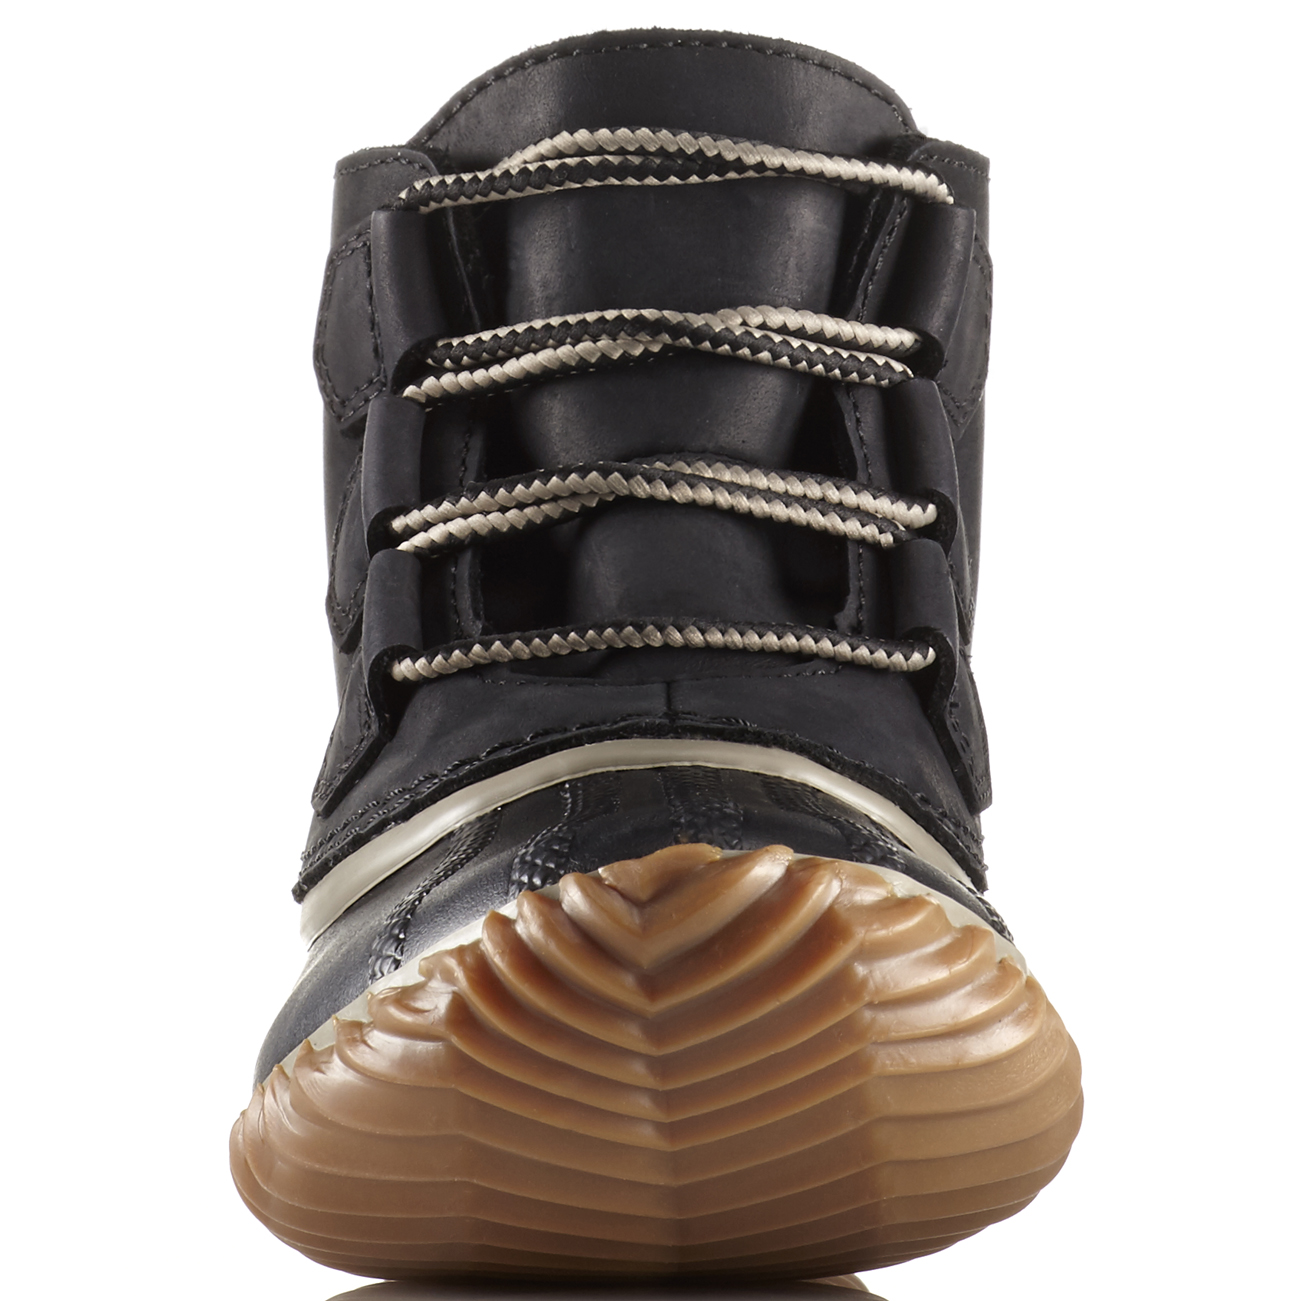 Grandes zapatos con descuento Ladies Sorel Out N About Trekking Walking Hiker Warm Casual Ankle Boot All Sizes